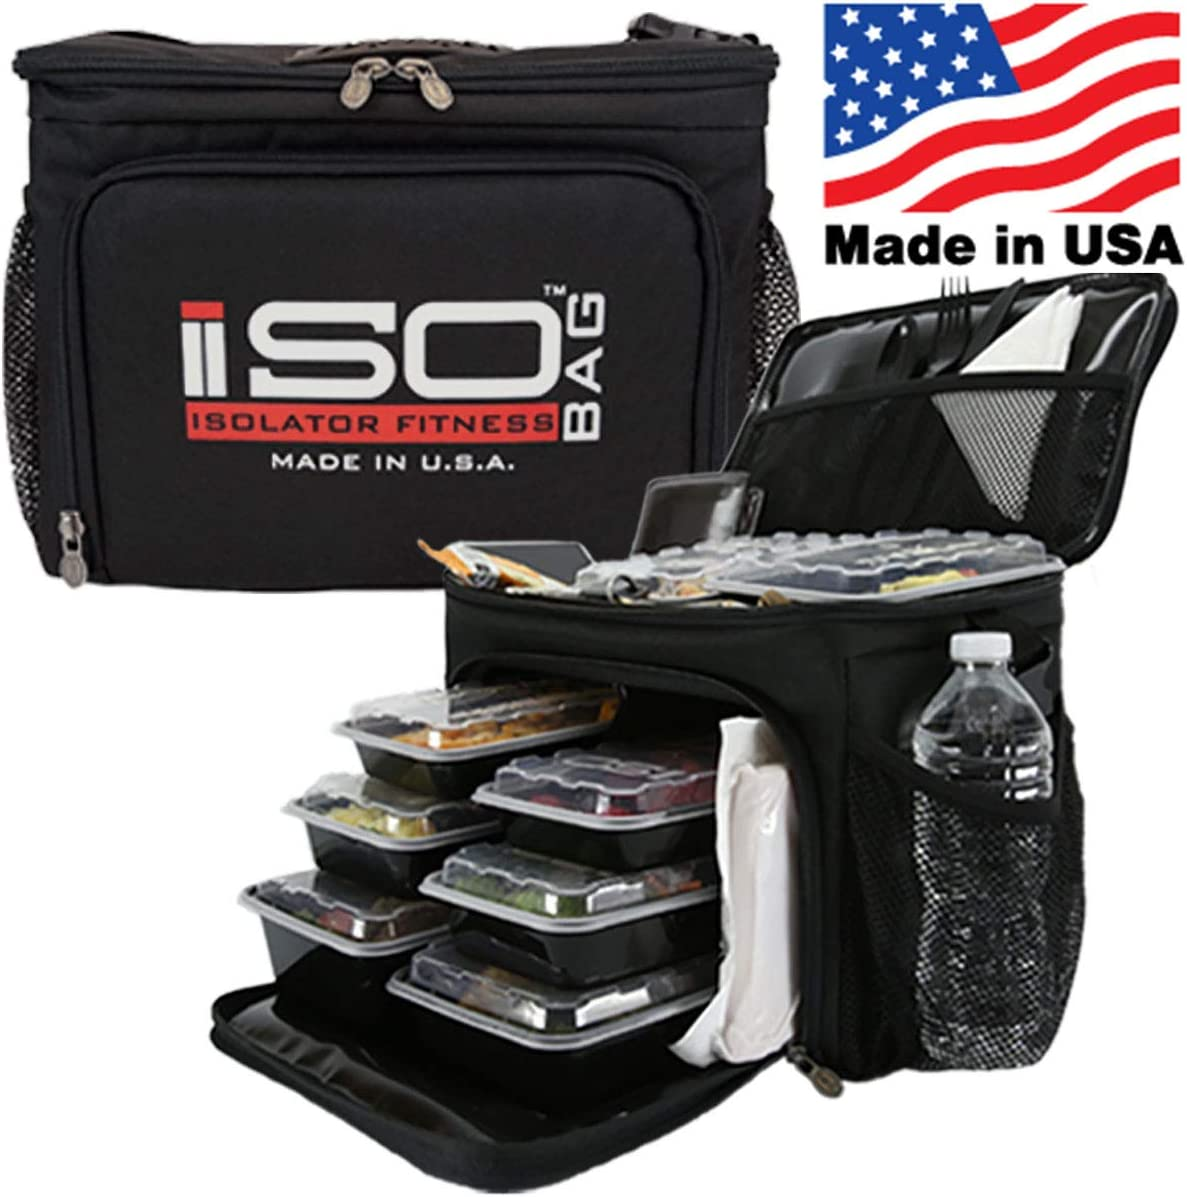 IsoCube 6 Meal Black/Red by Isolator Fitness: Amazon.es: Hogar